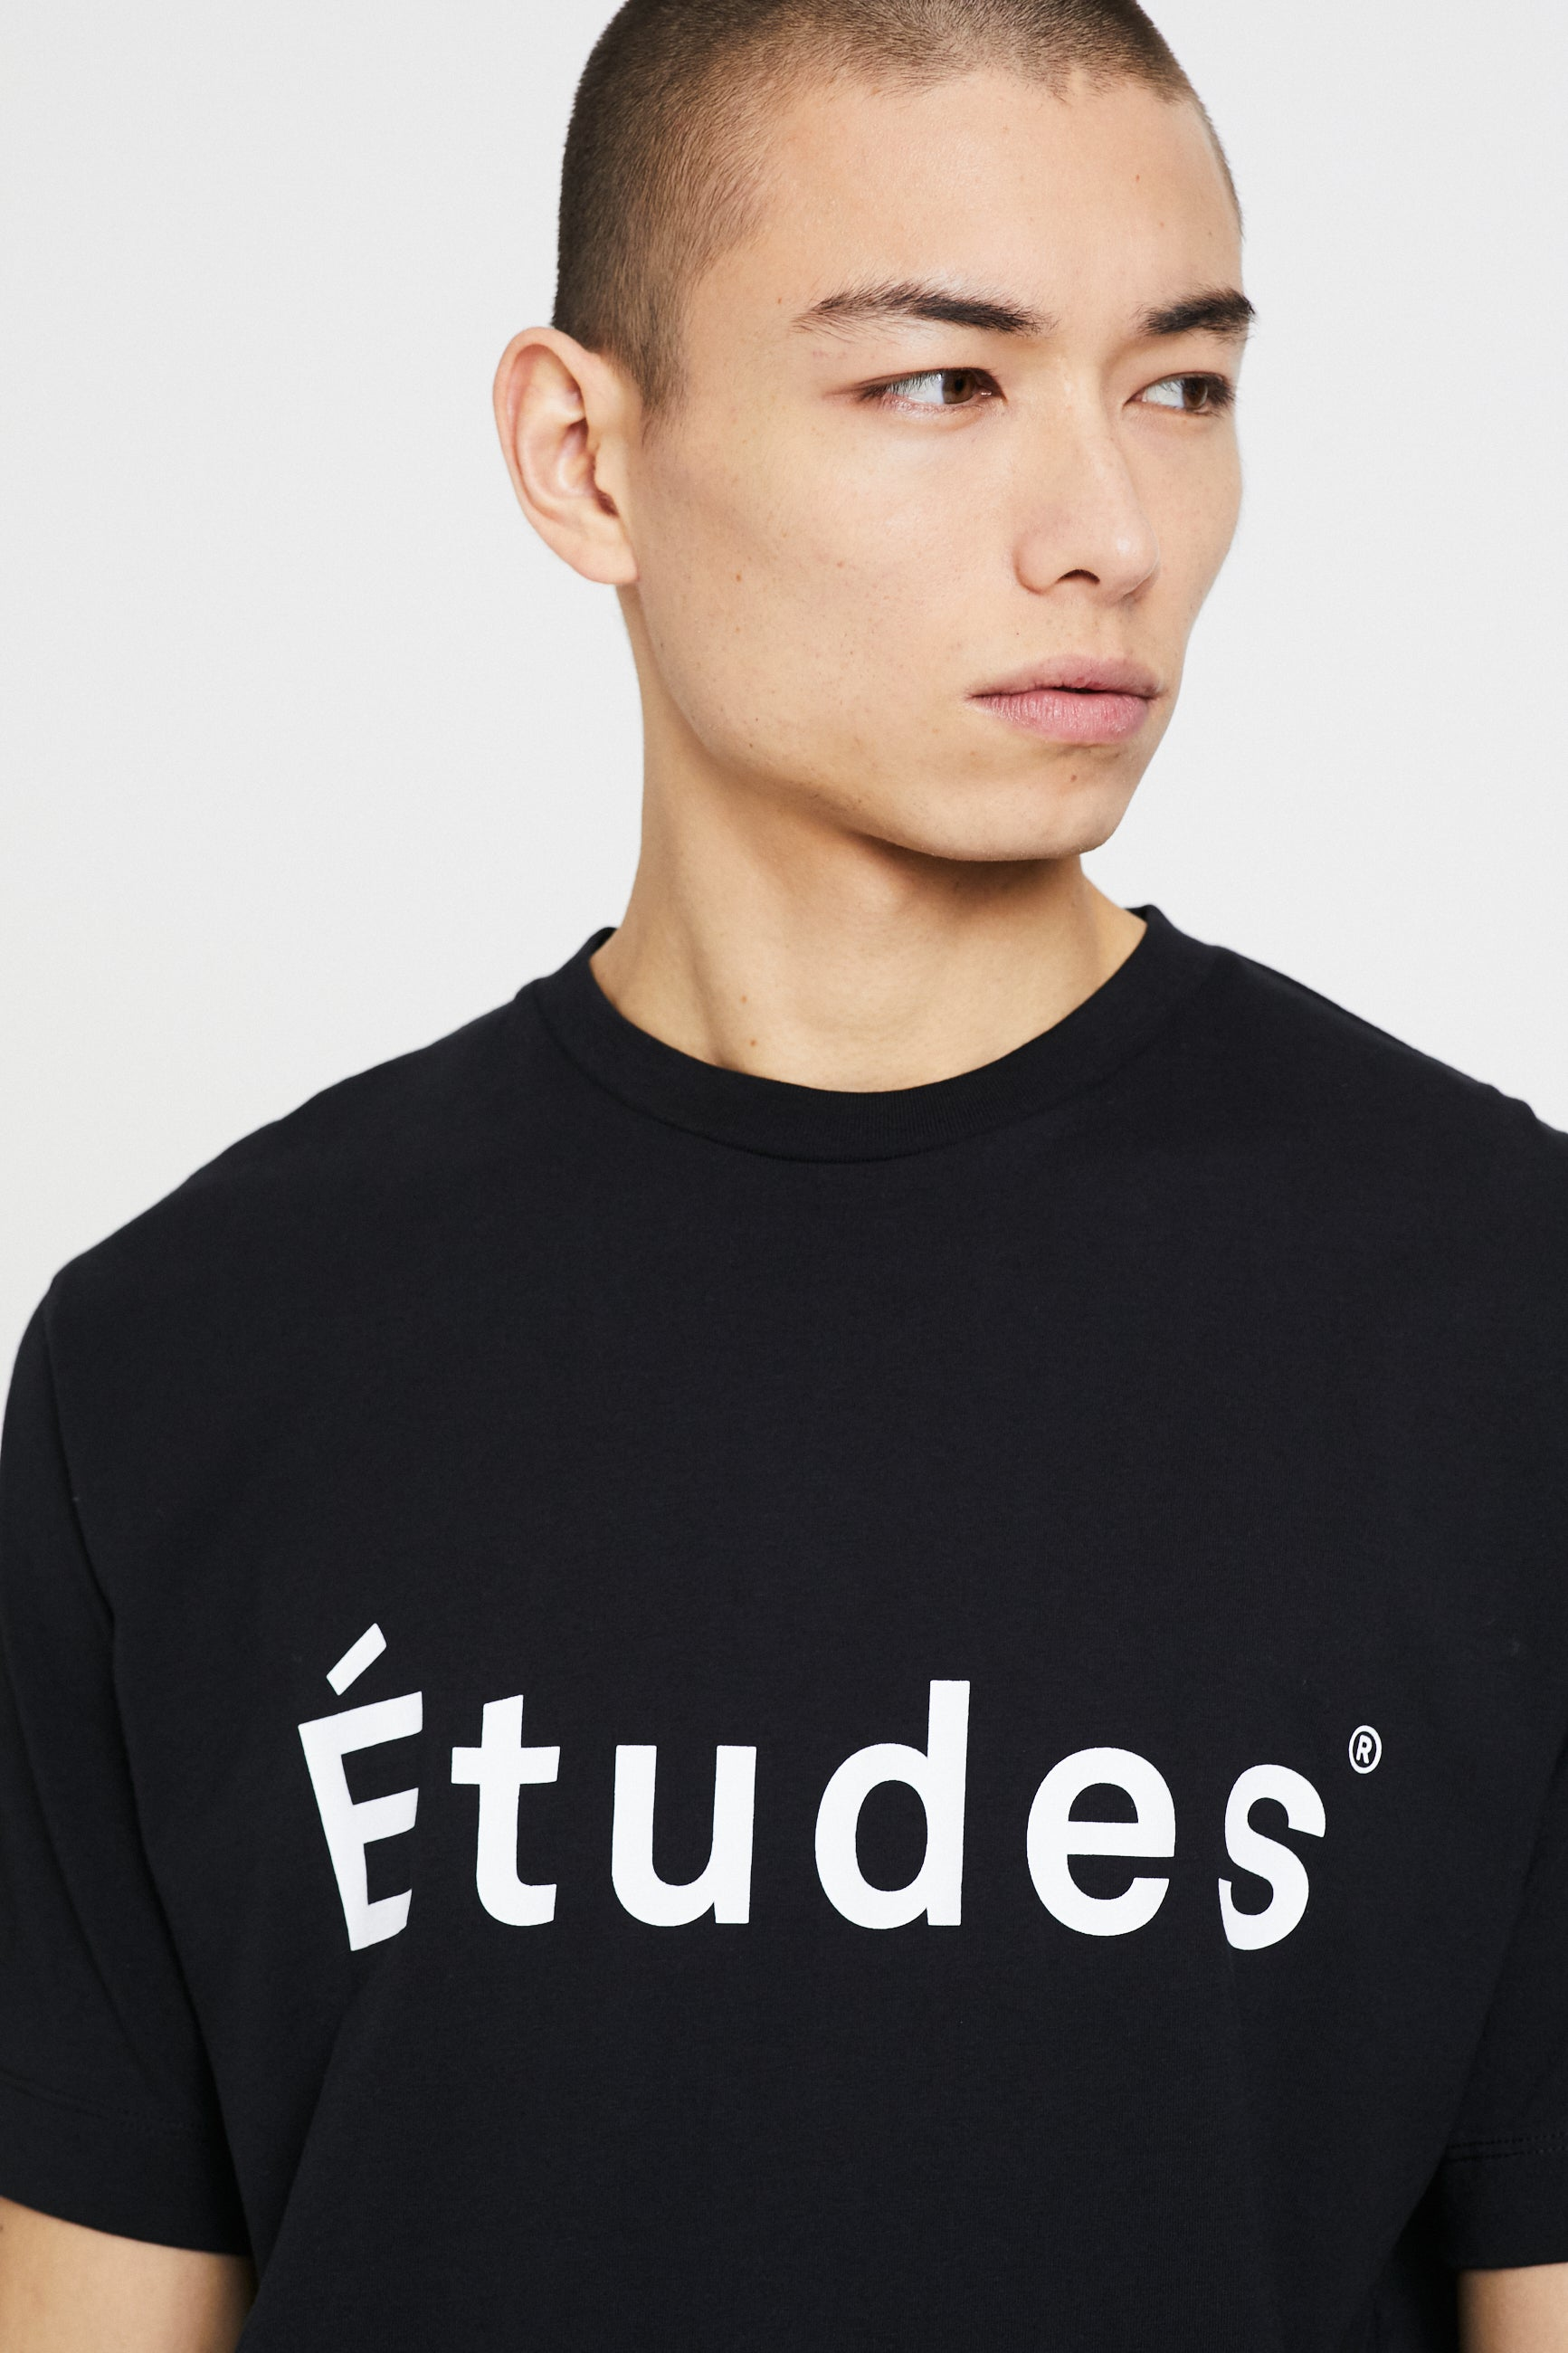 Études Wonder Études Black T-shirt 3